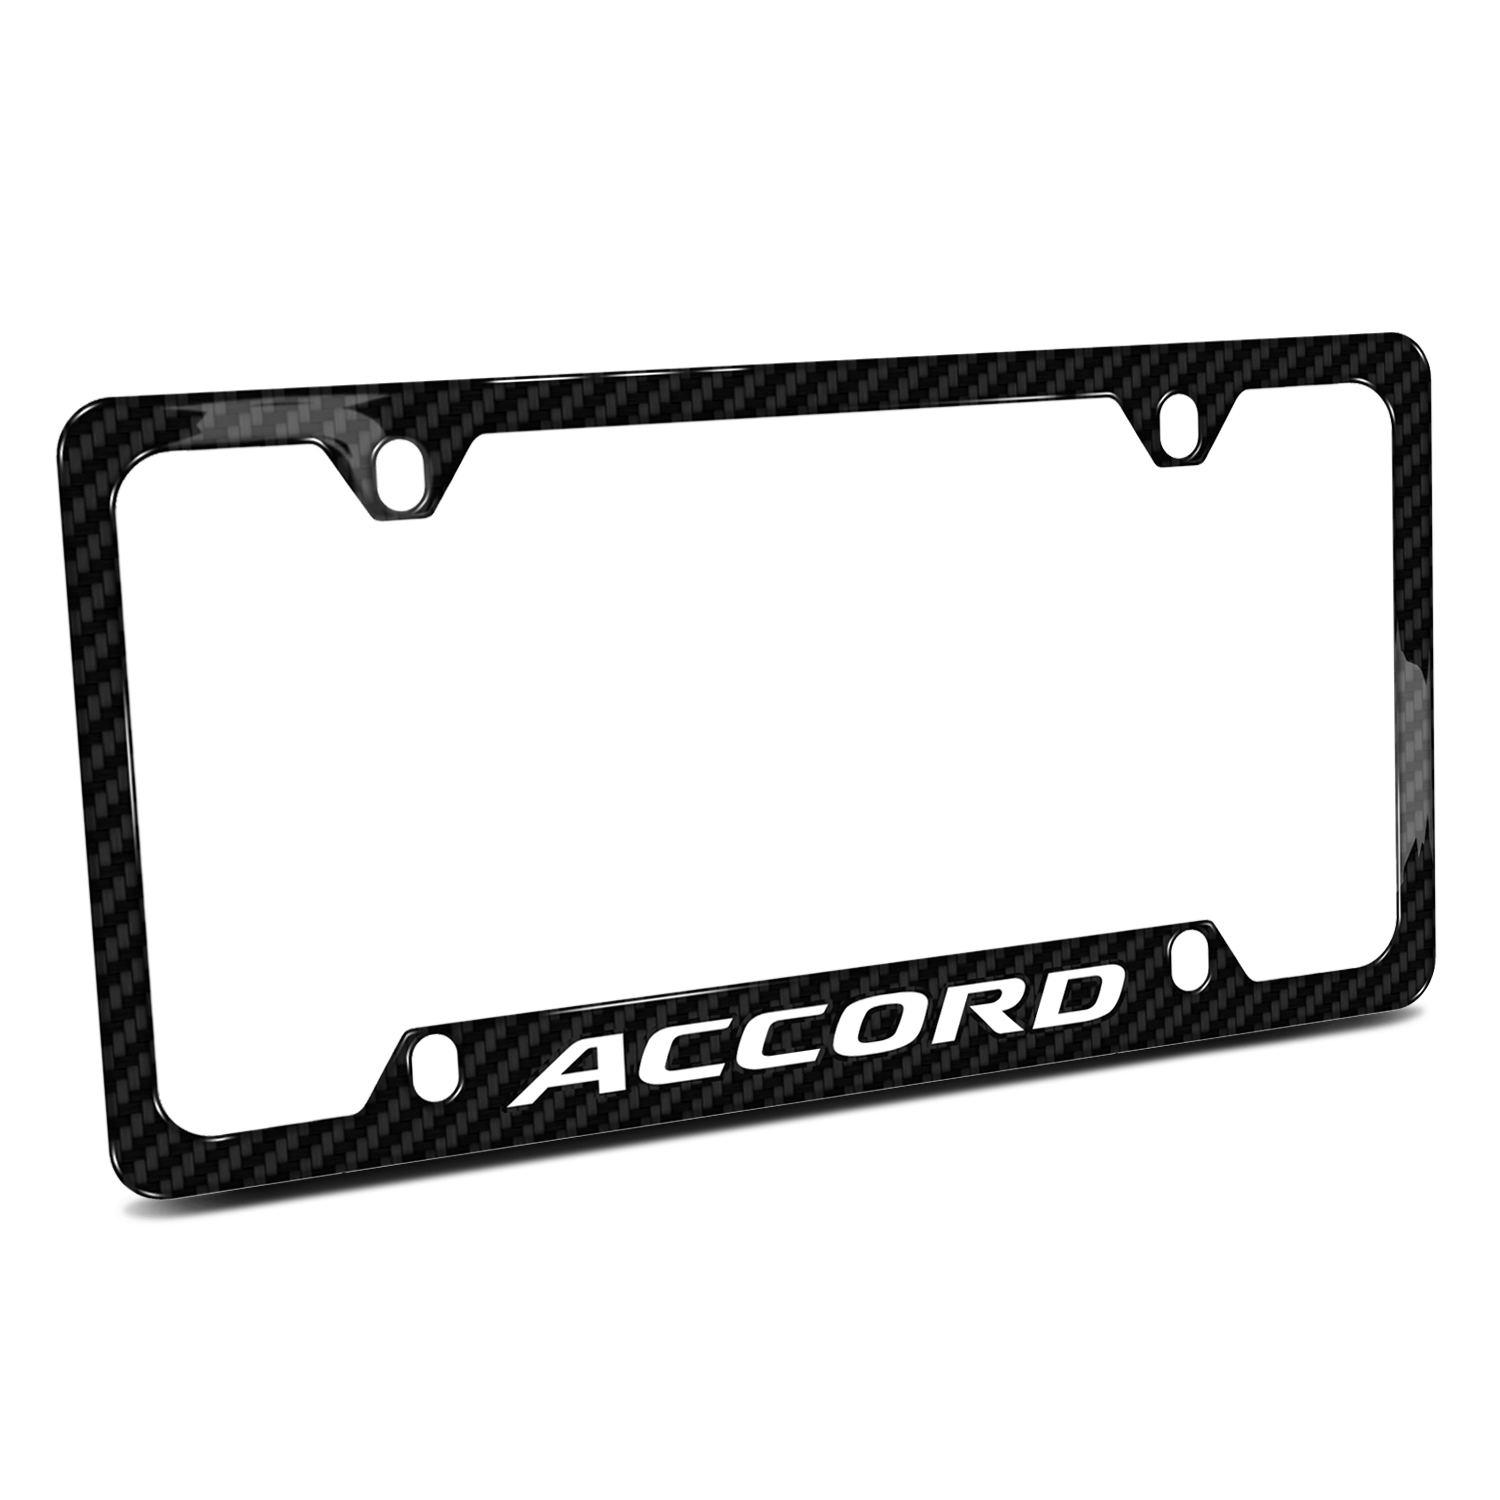 Honda Accord Black Real Carbon Fiber 50 States License Plate Frame